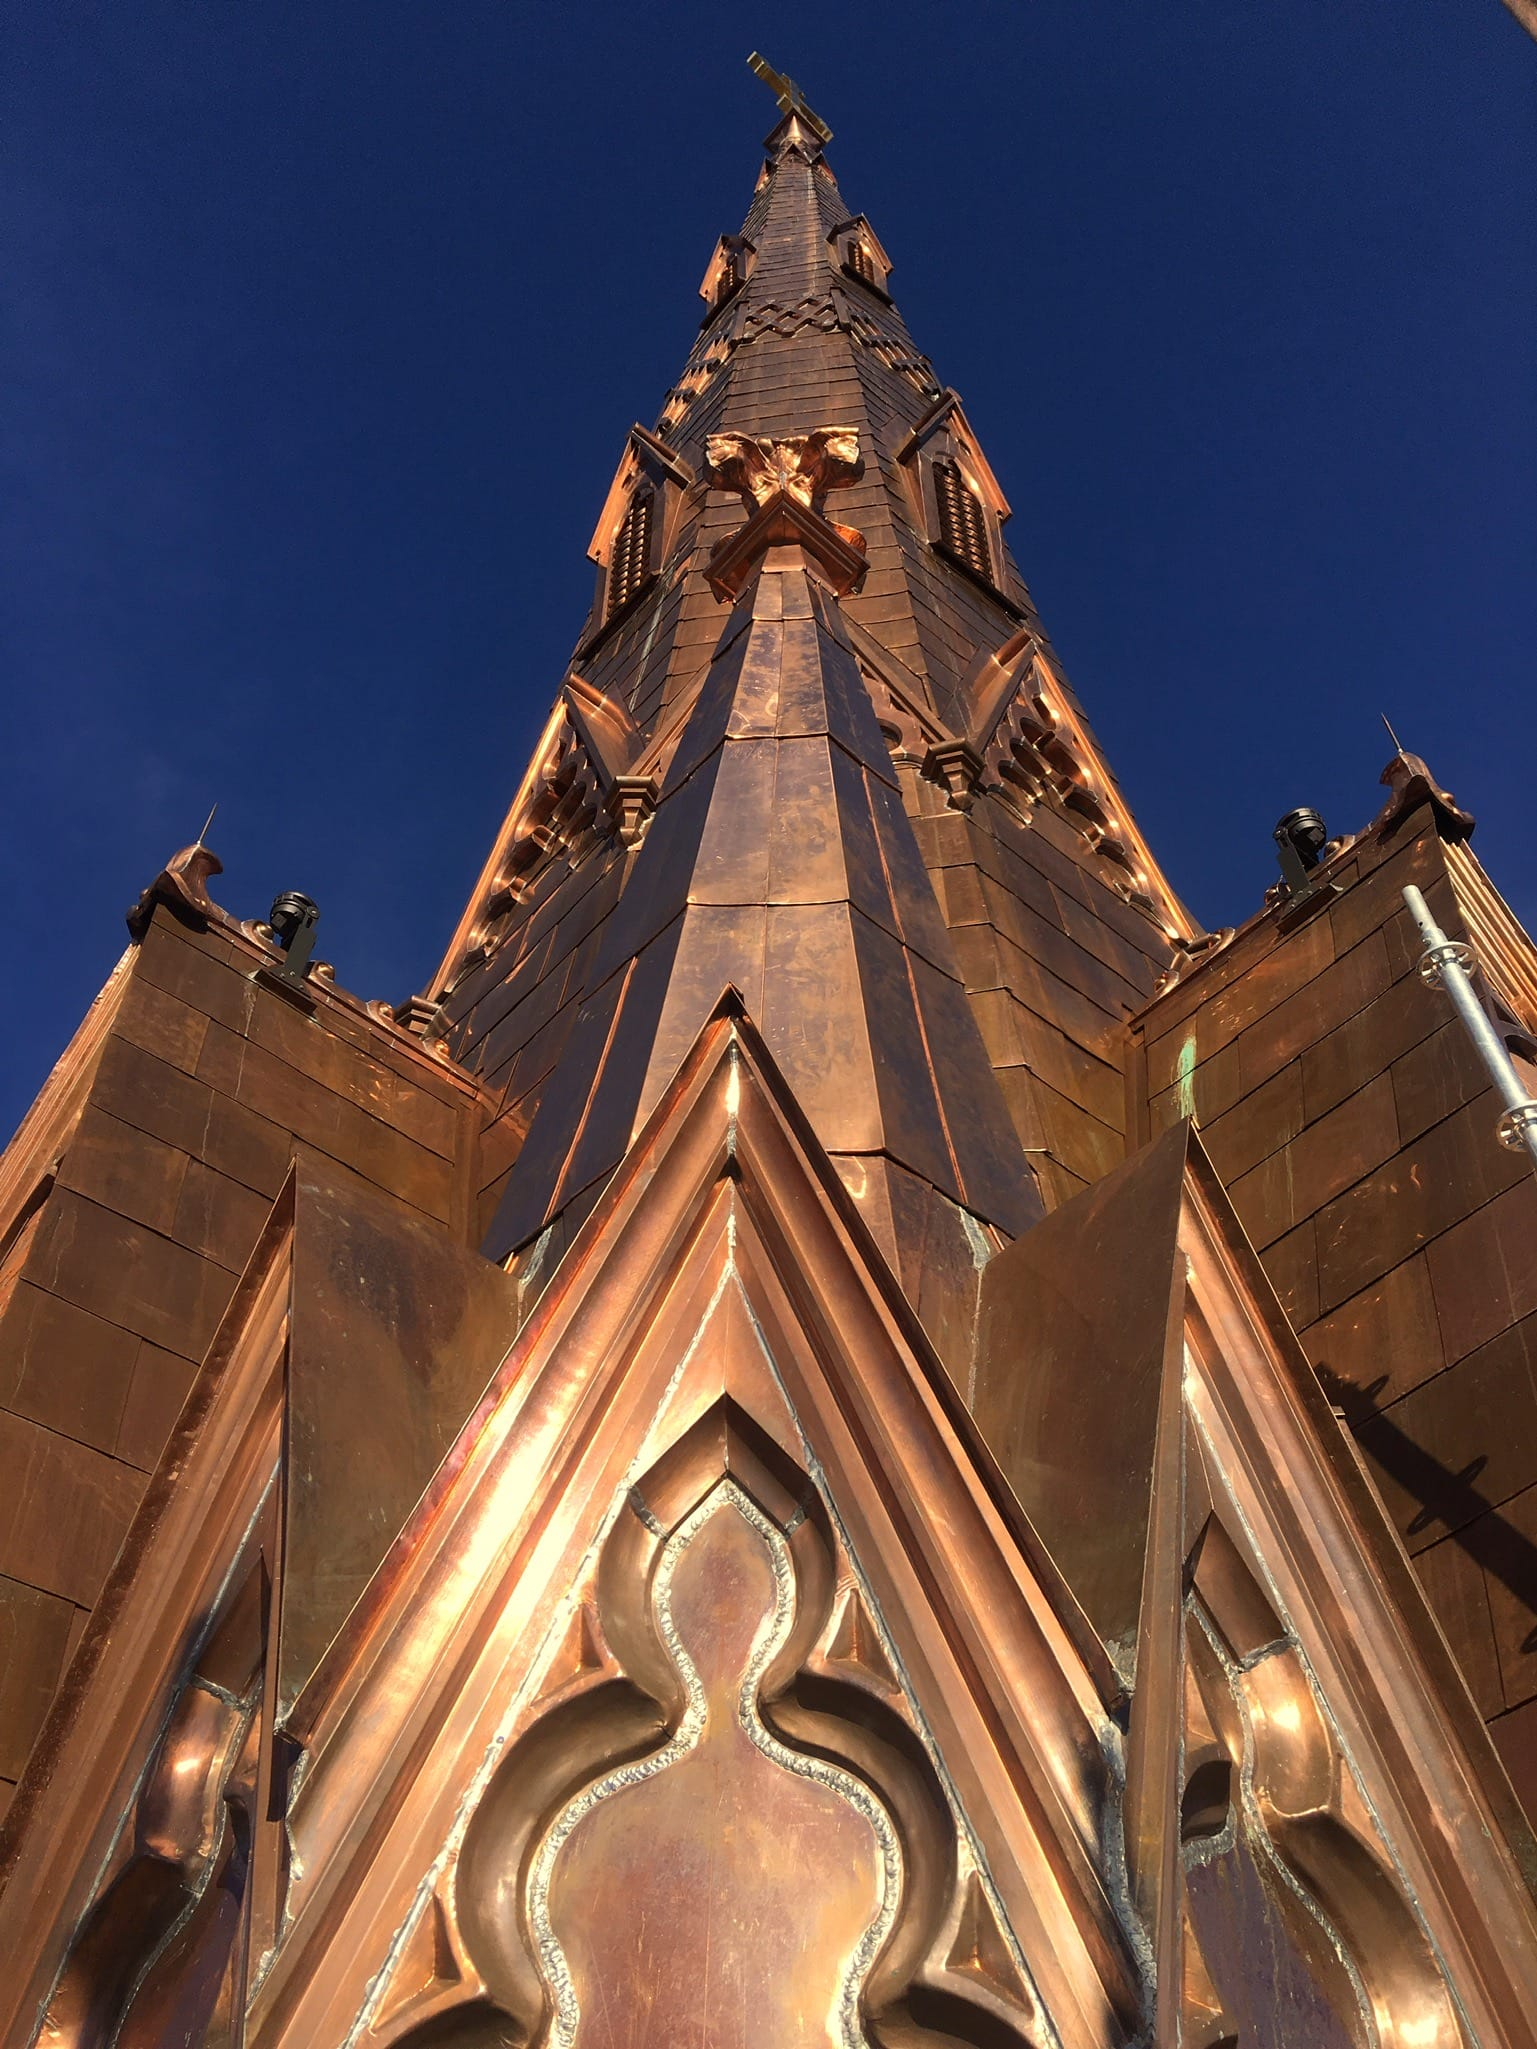 steeple square in iowa copper spire when viewed from below